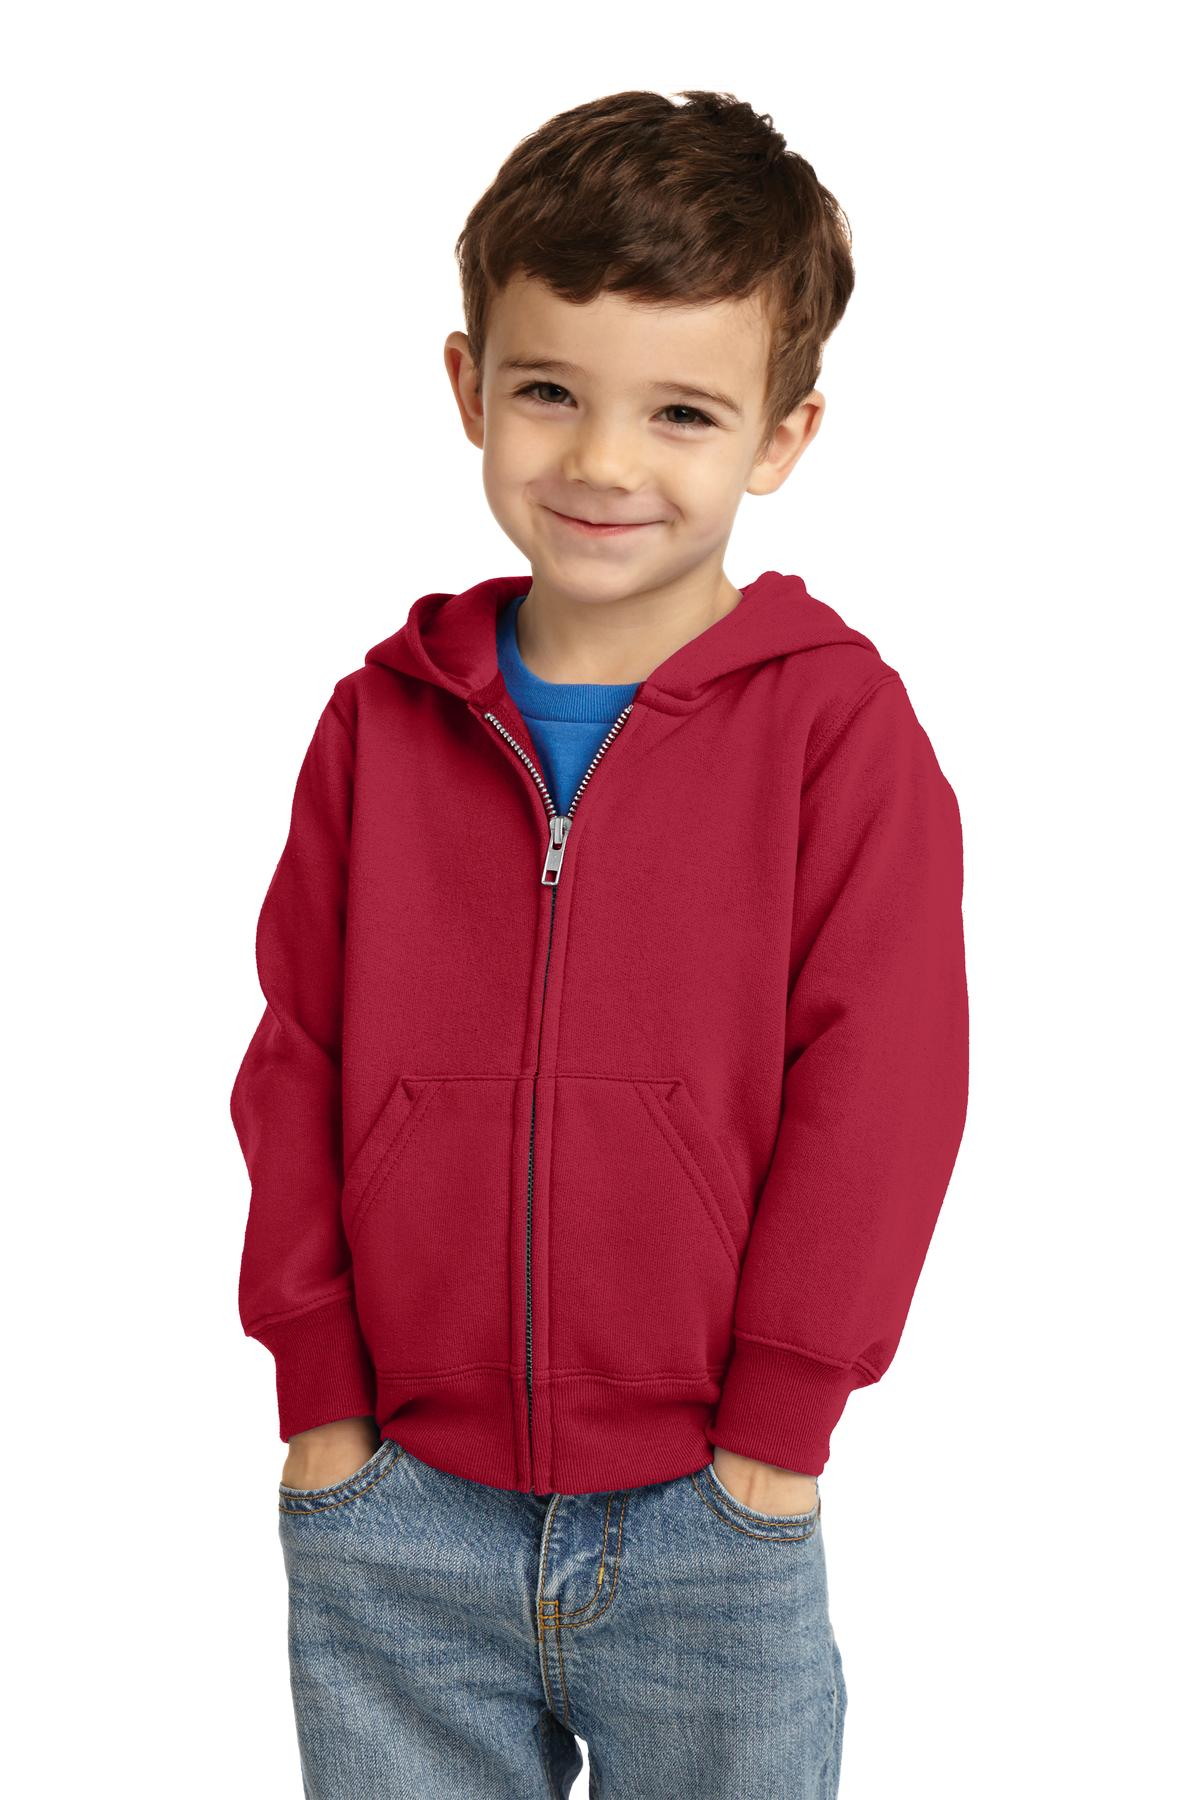 Port & Company ®  Toddler Core Fleece Full-Zip Hooded Sweatshirt. CAR78TZH - Red